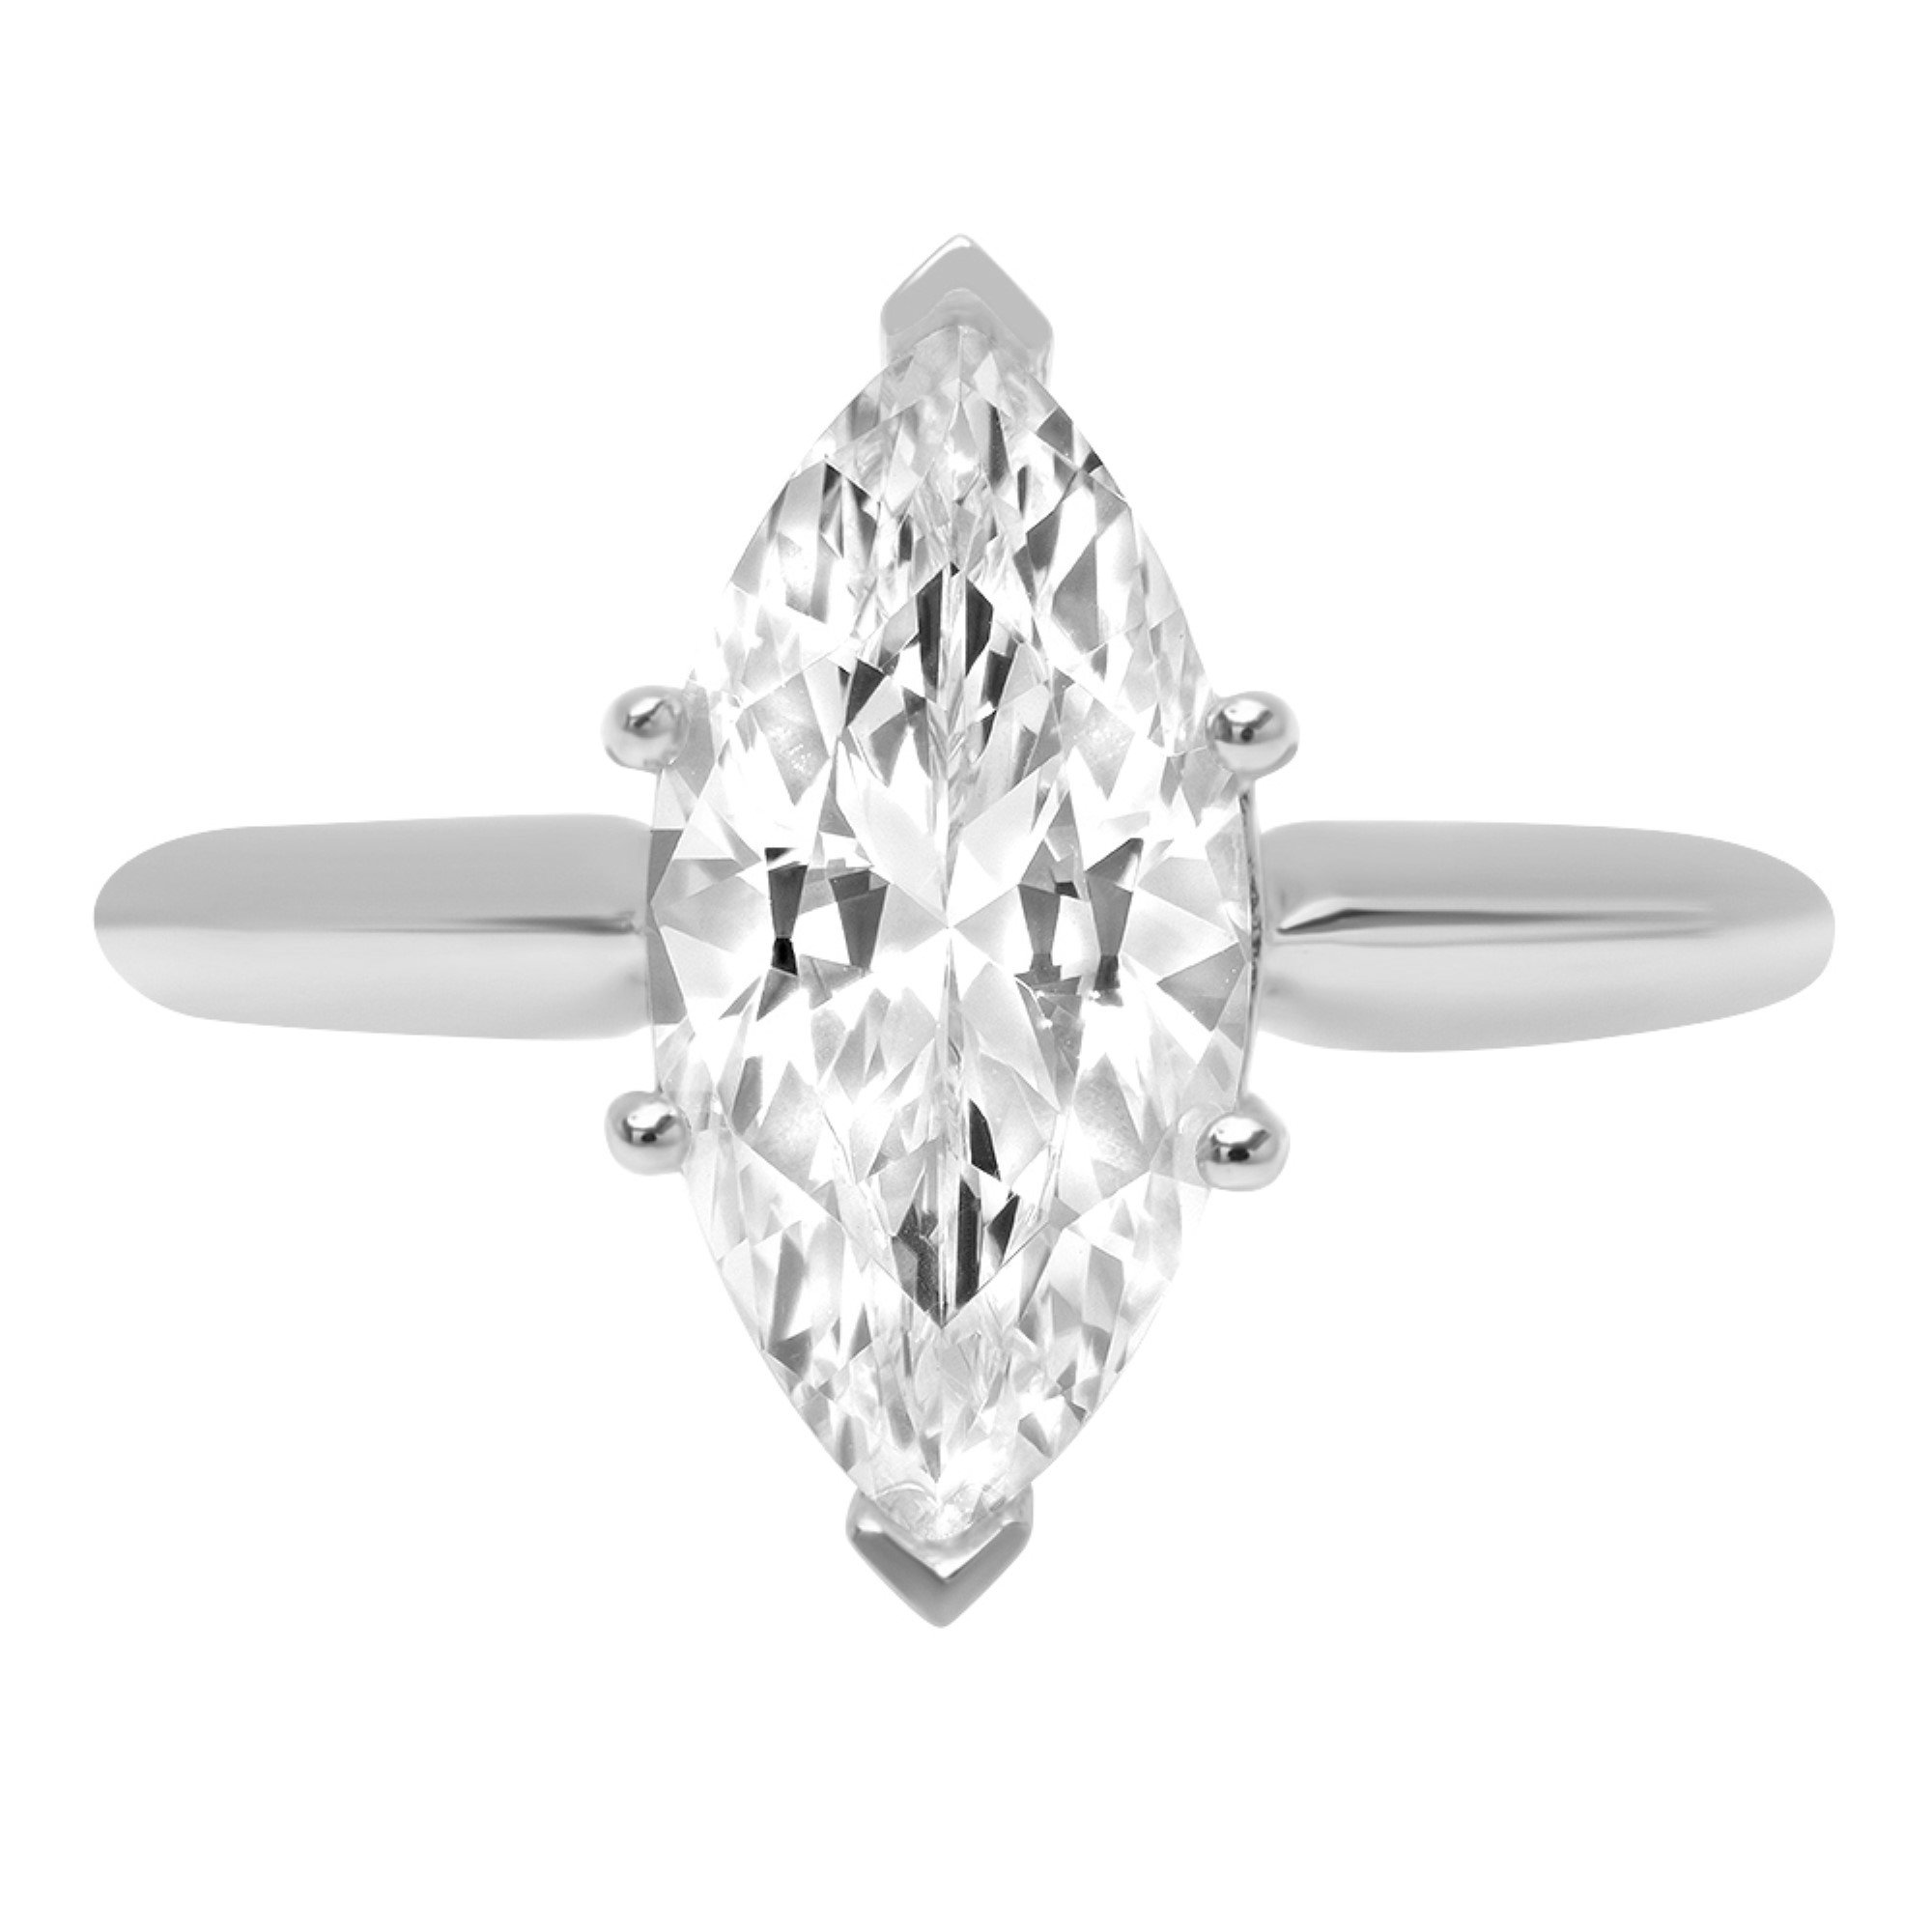 DQ Jewelry 2.05ct Marquise Cut Classic Solitaire Engagement Promise Ring 14k White Gold, Size 3.5